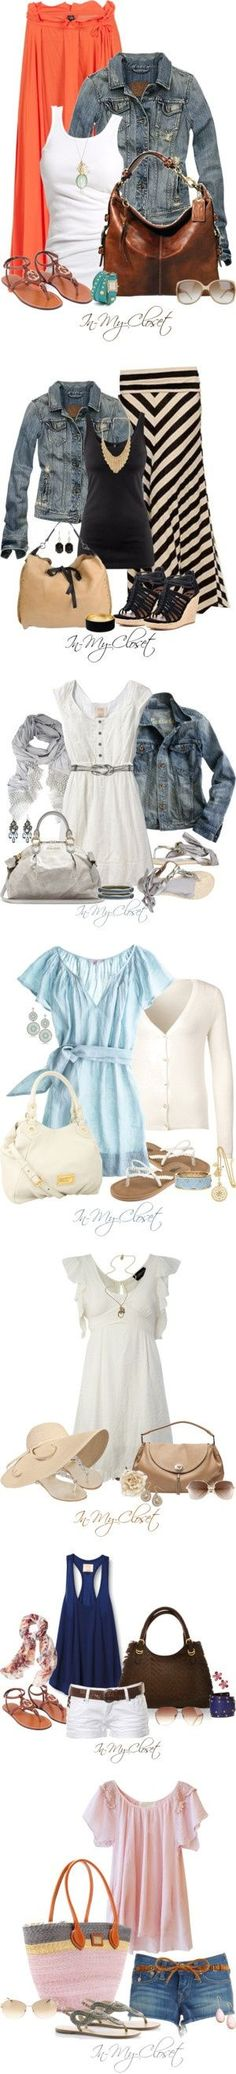 """Hurry Up Summer!"" by in-my-closet on Poly - Hurry Up Summer! by in-my-closet on Polyvore  Repinly Hair & Beauty Popular Pins"